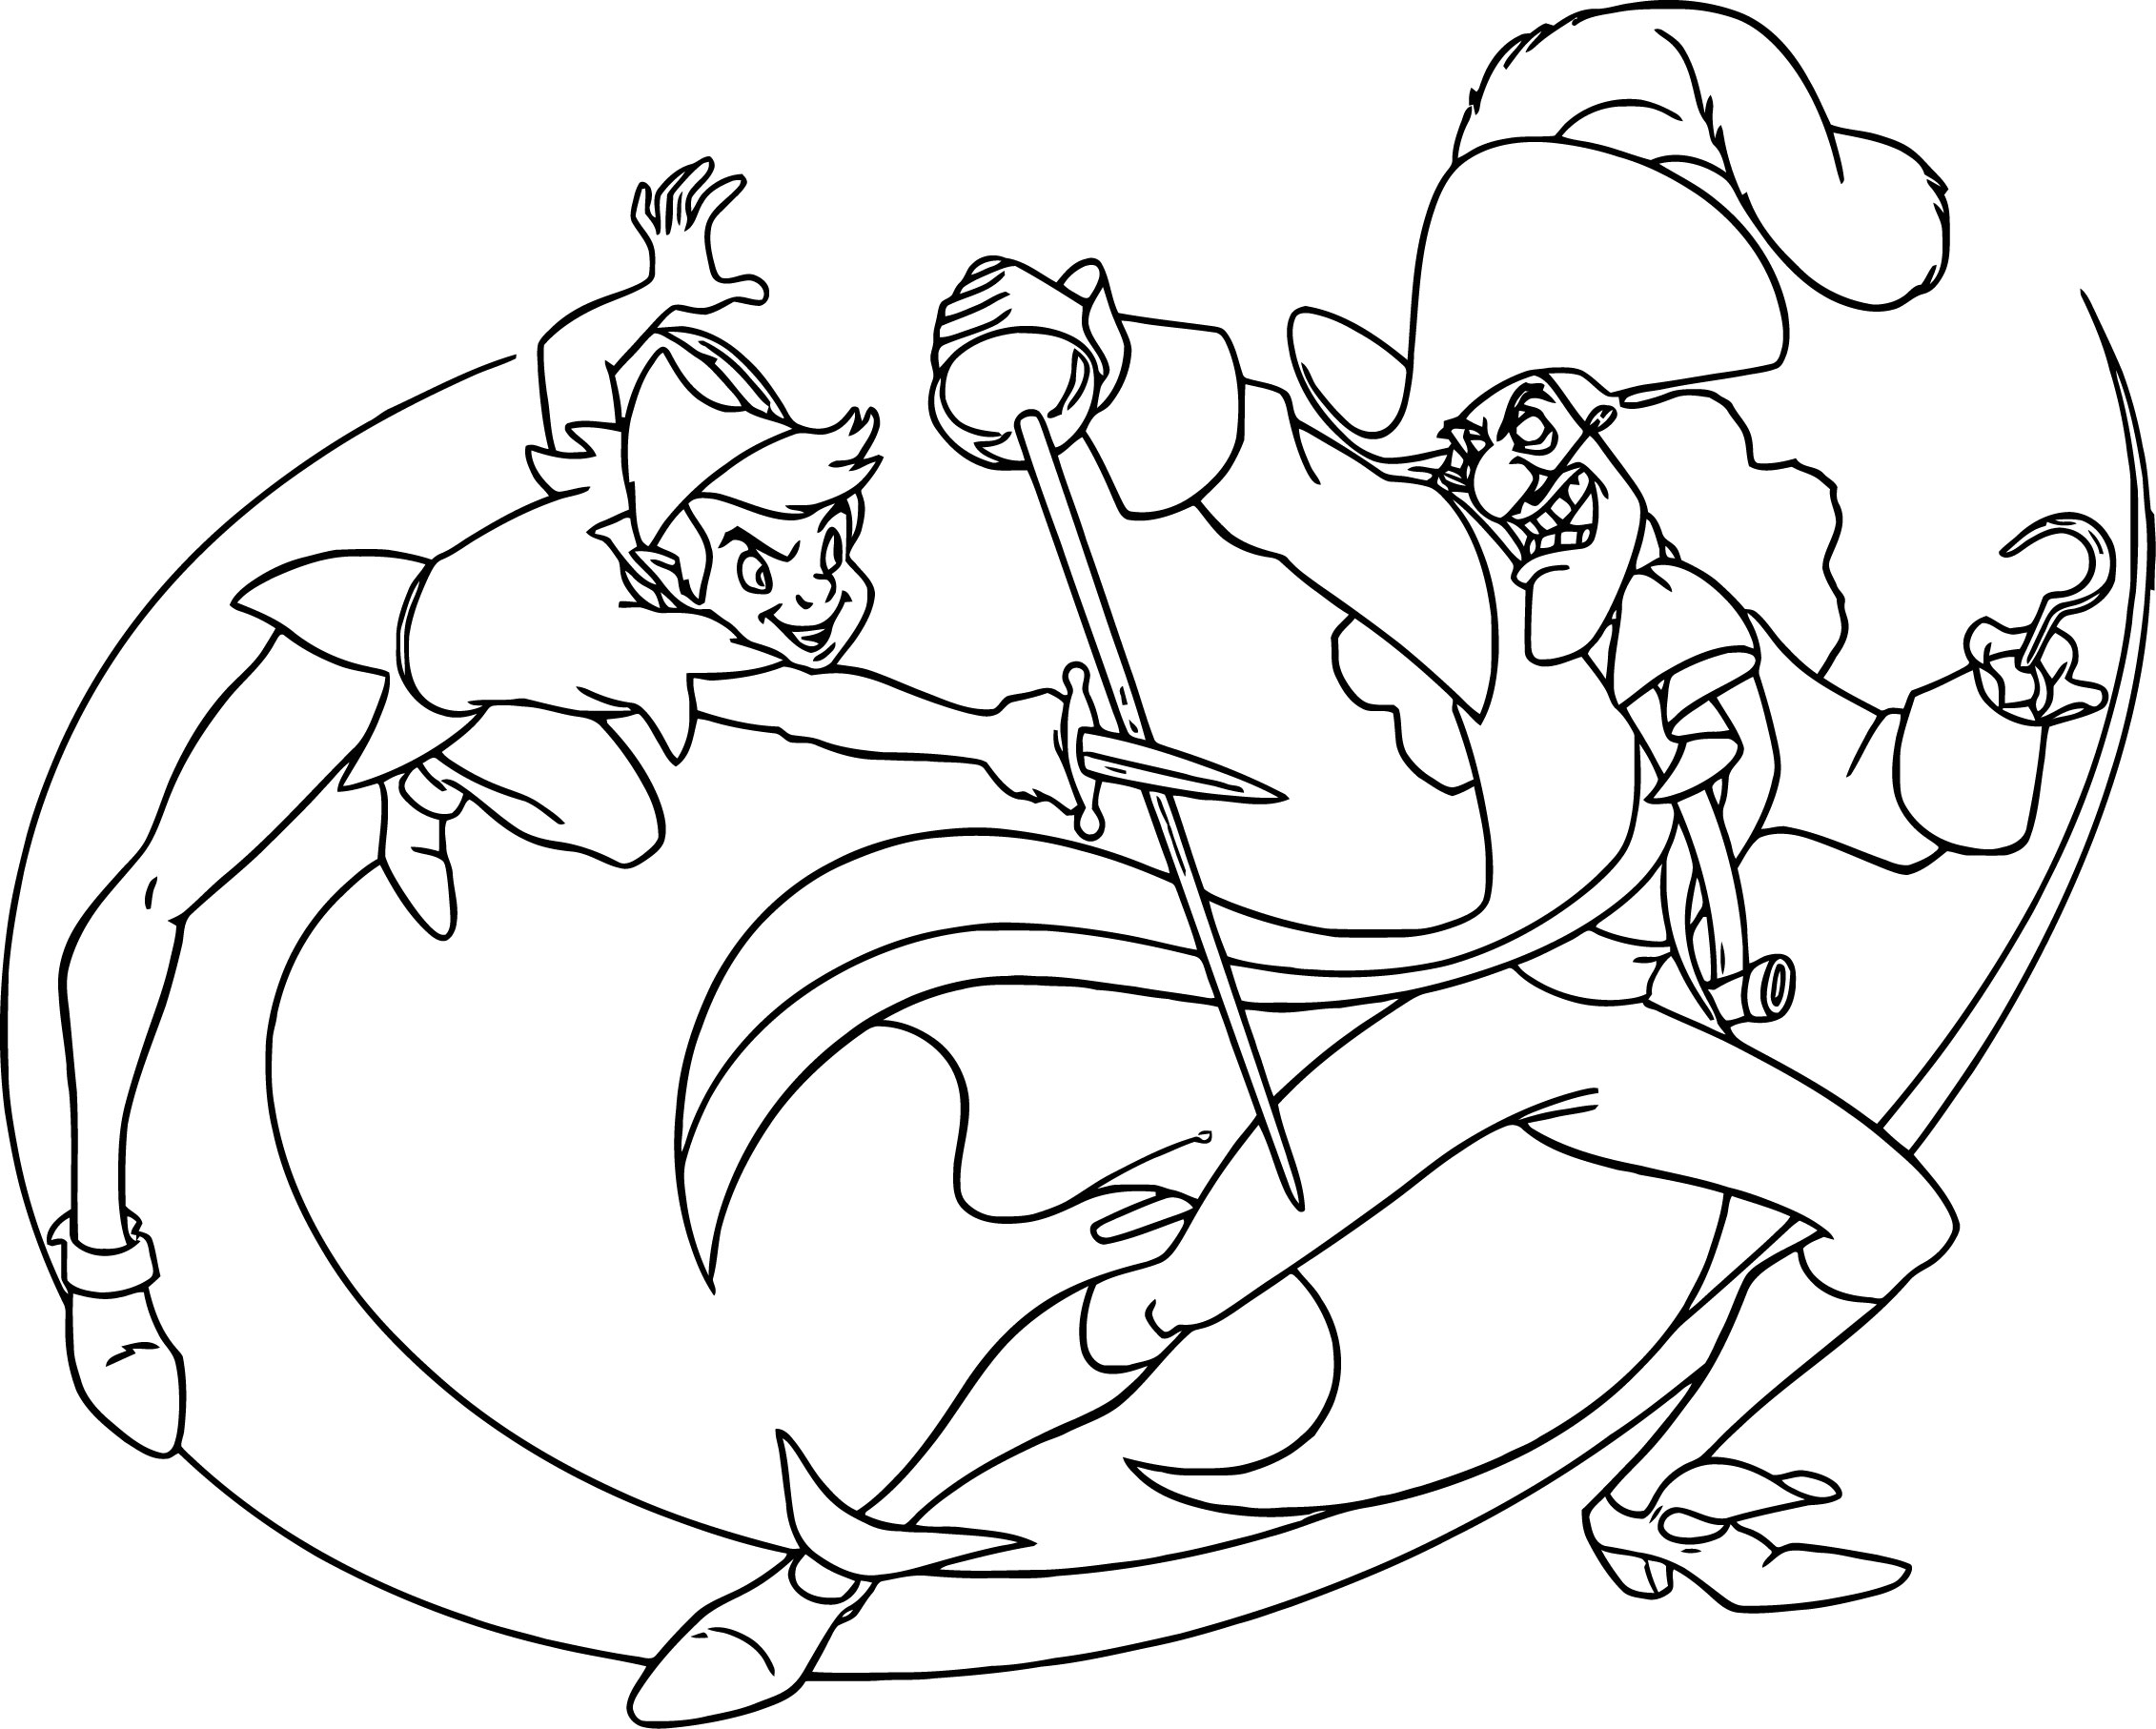 Peter Pan And Captain Hook Coloring Pages | Wecoloringpage